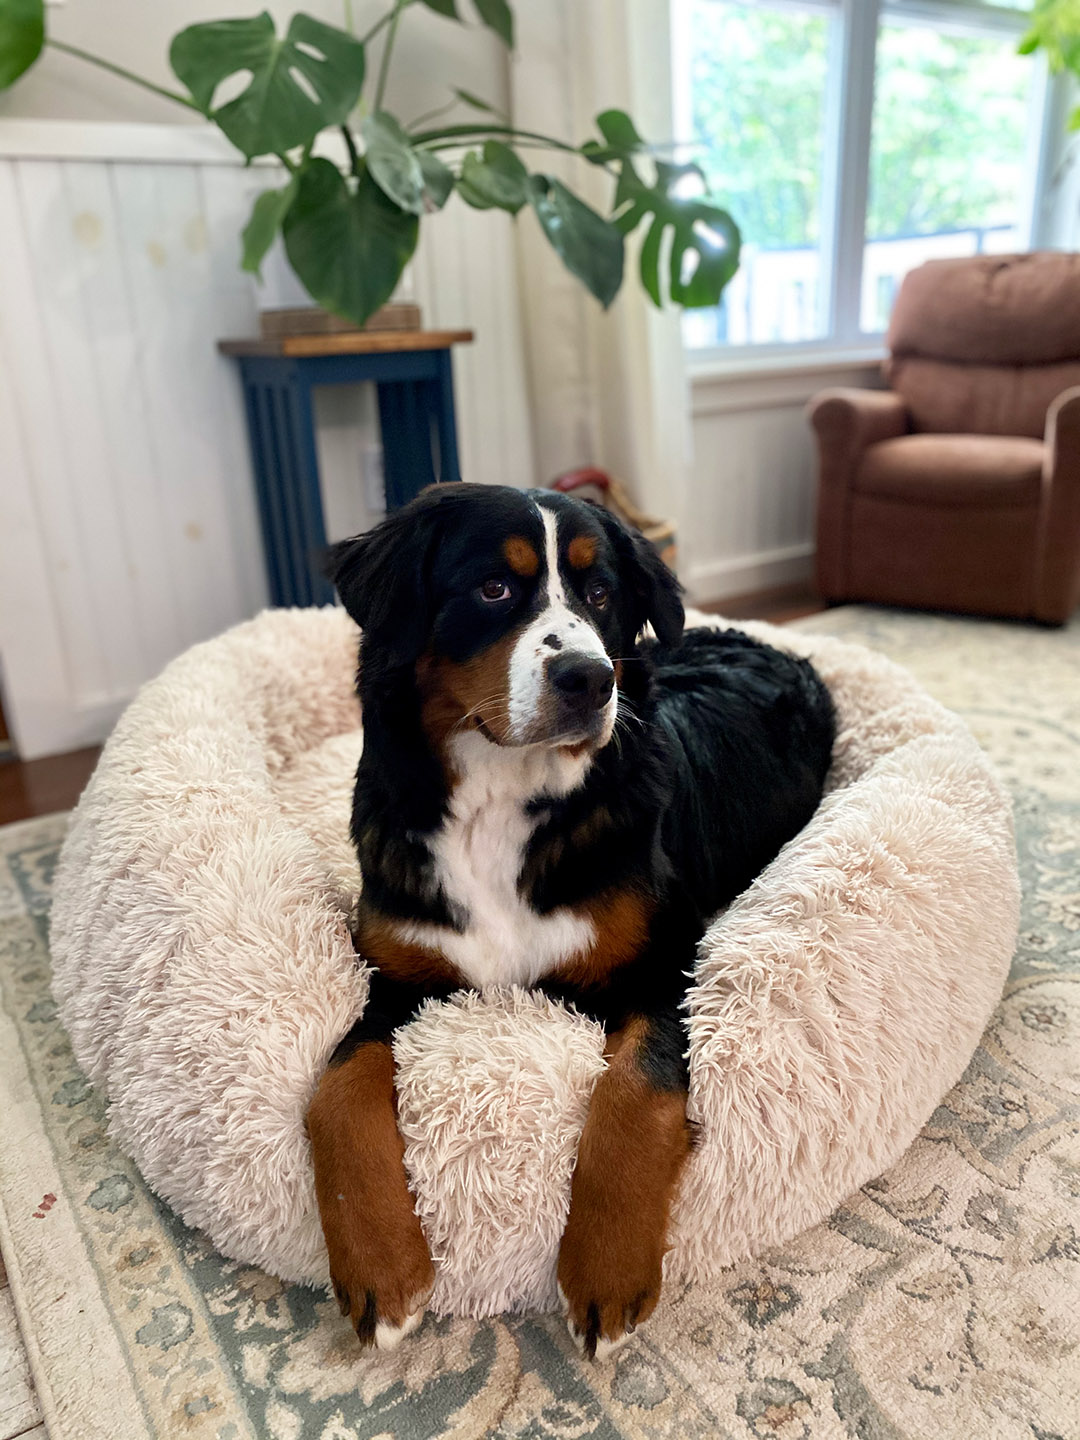 Mochi, a Bernese mountain dog, lays on a beanbag indoors.